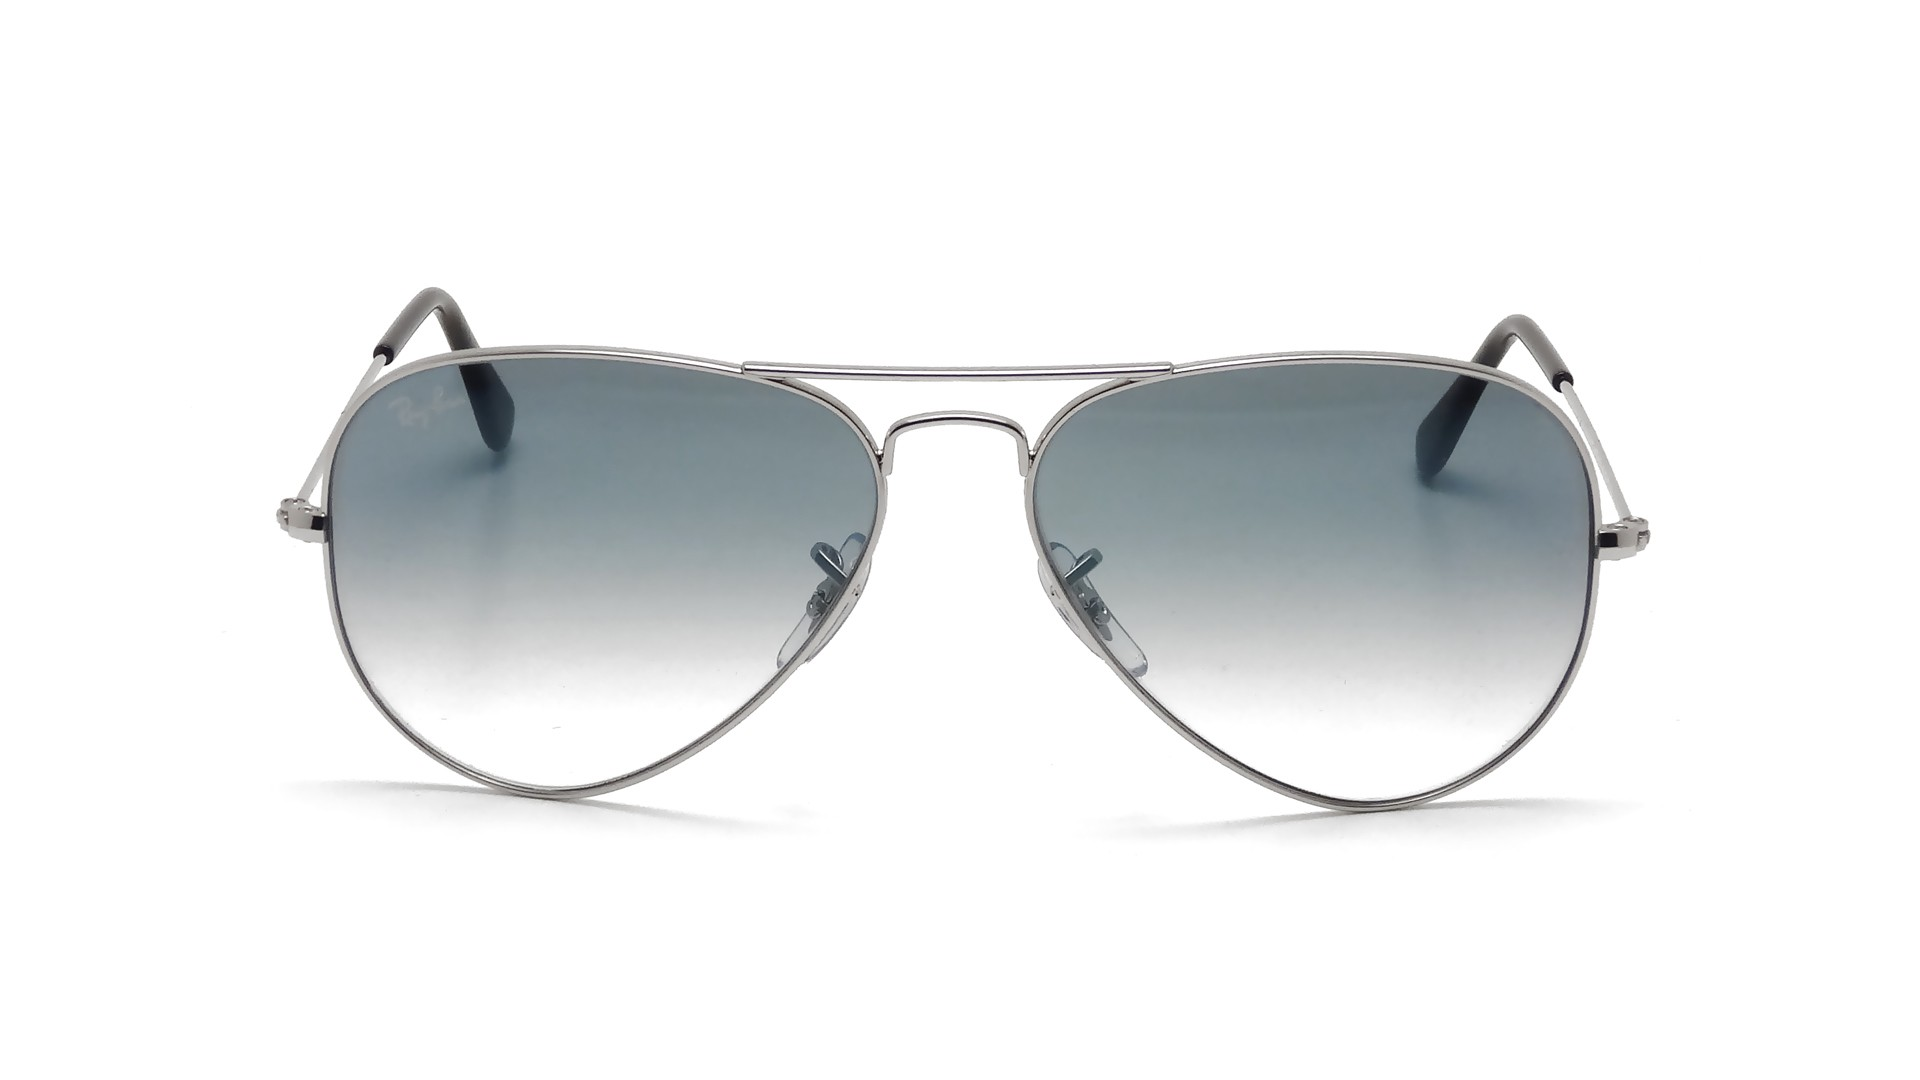 00a01789be2e7 Ray-Ban Aviator Metal Argent RB3025 003 3F 55-14